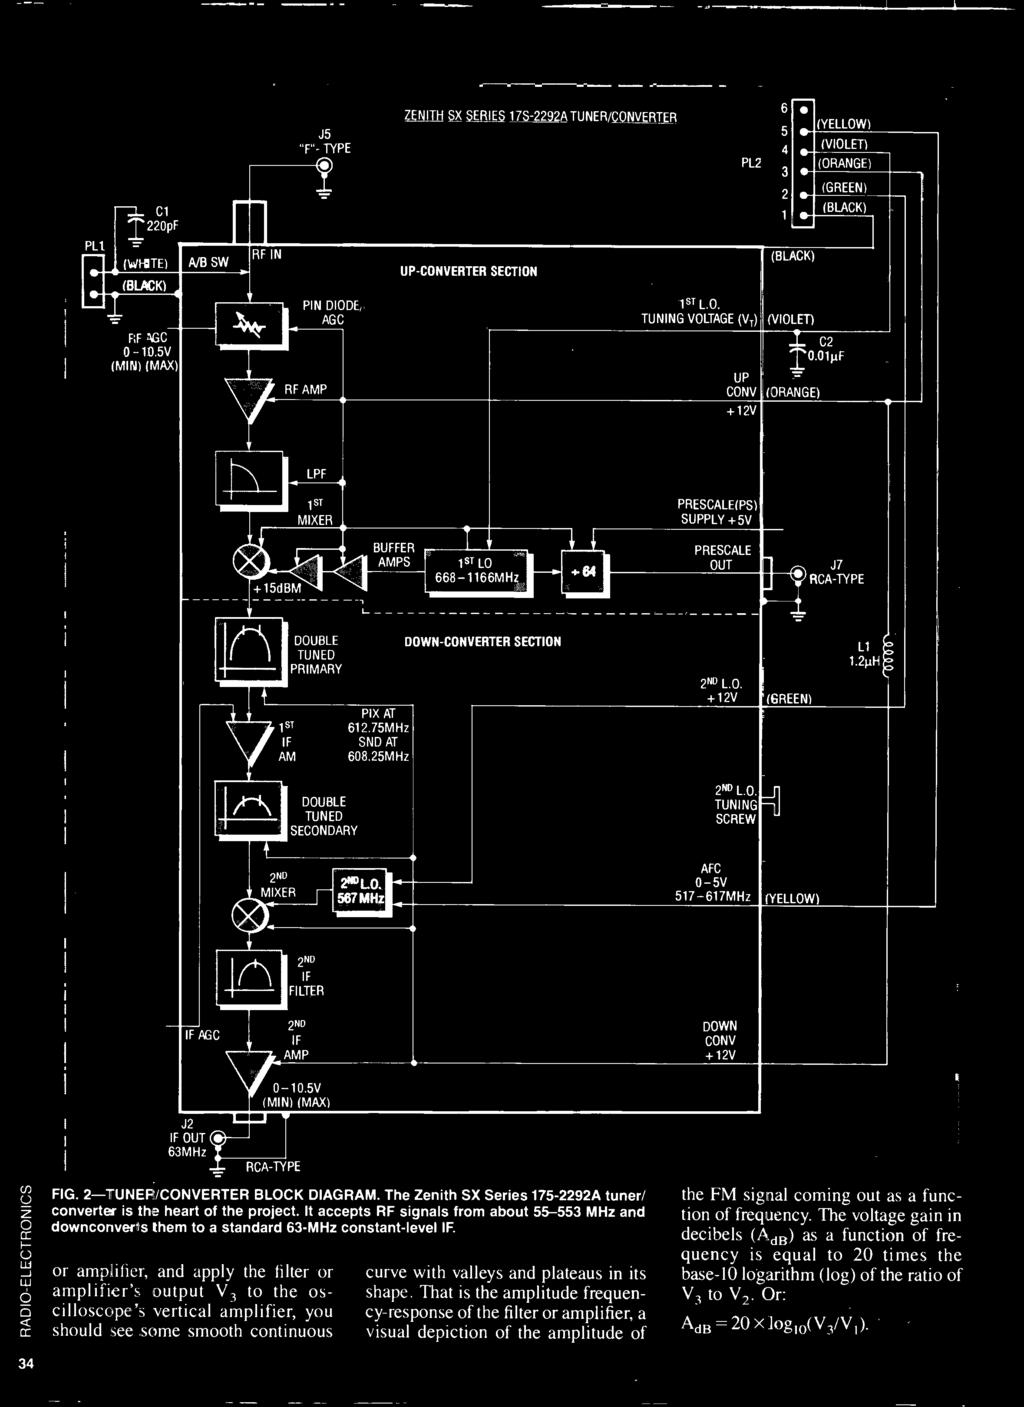 Ectre Build This Spectrum Monitor Op Ampinstr Architectures The 2n2907 In Reverse Unit Project Schematic Circuit Diagram And Datasheet 5v Min Max J2 If Out 63mhz Rca Type Fig